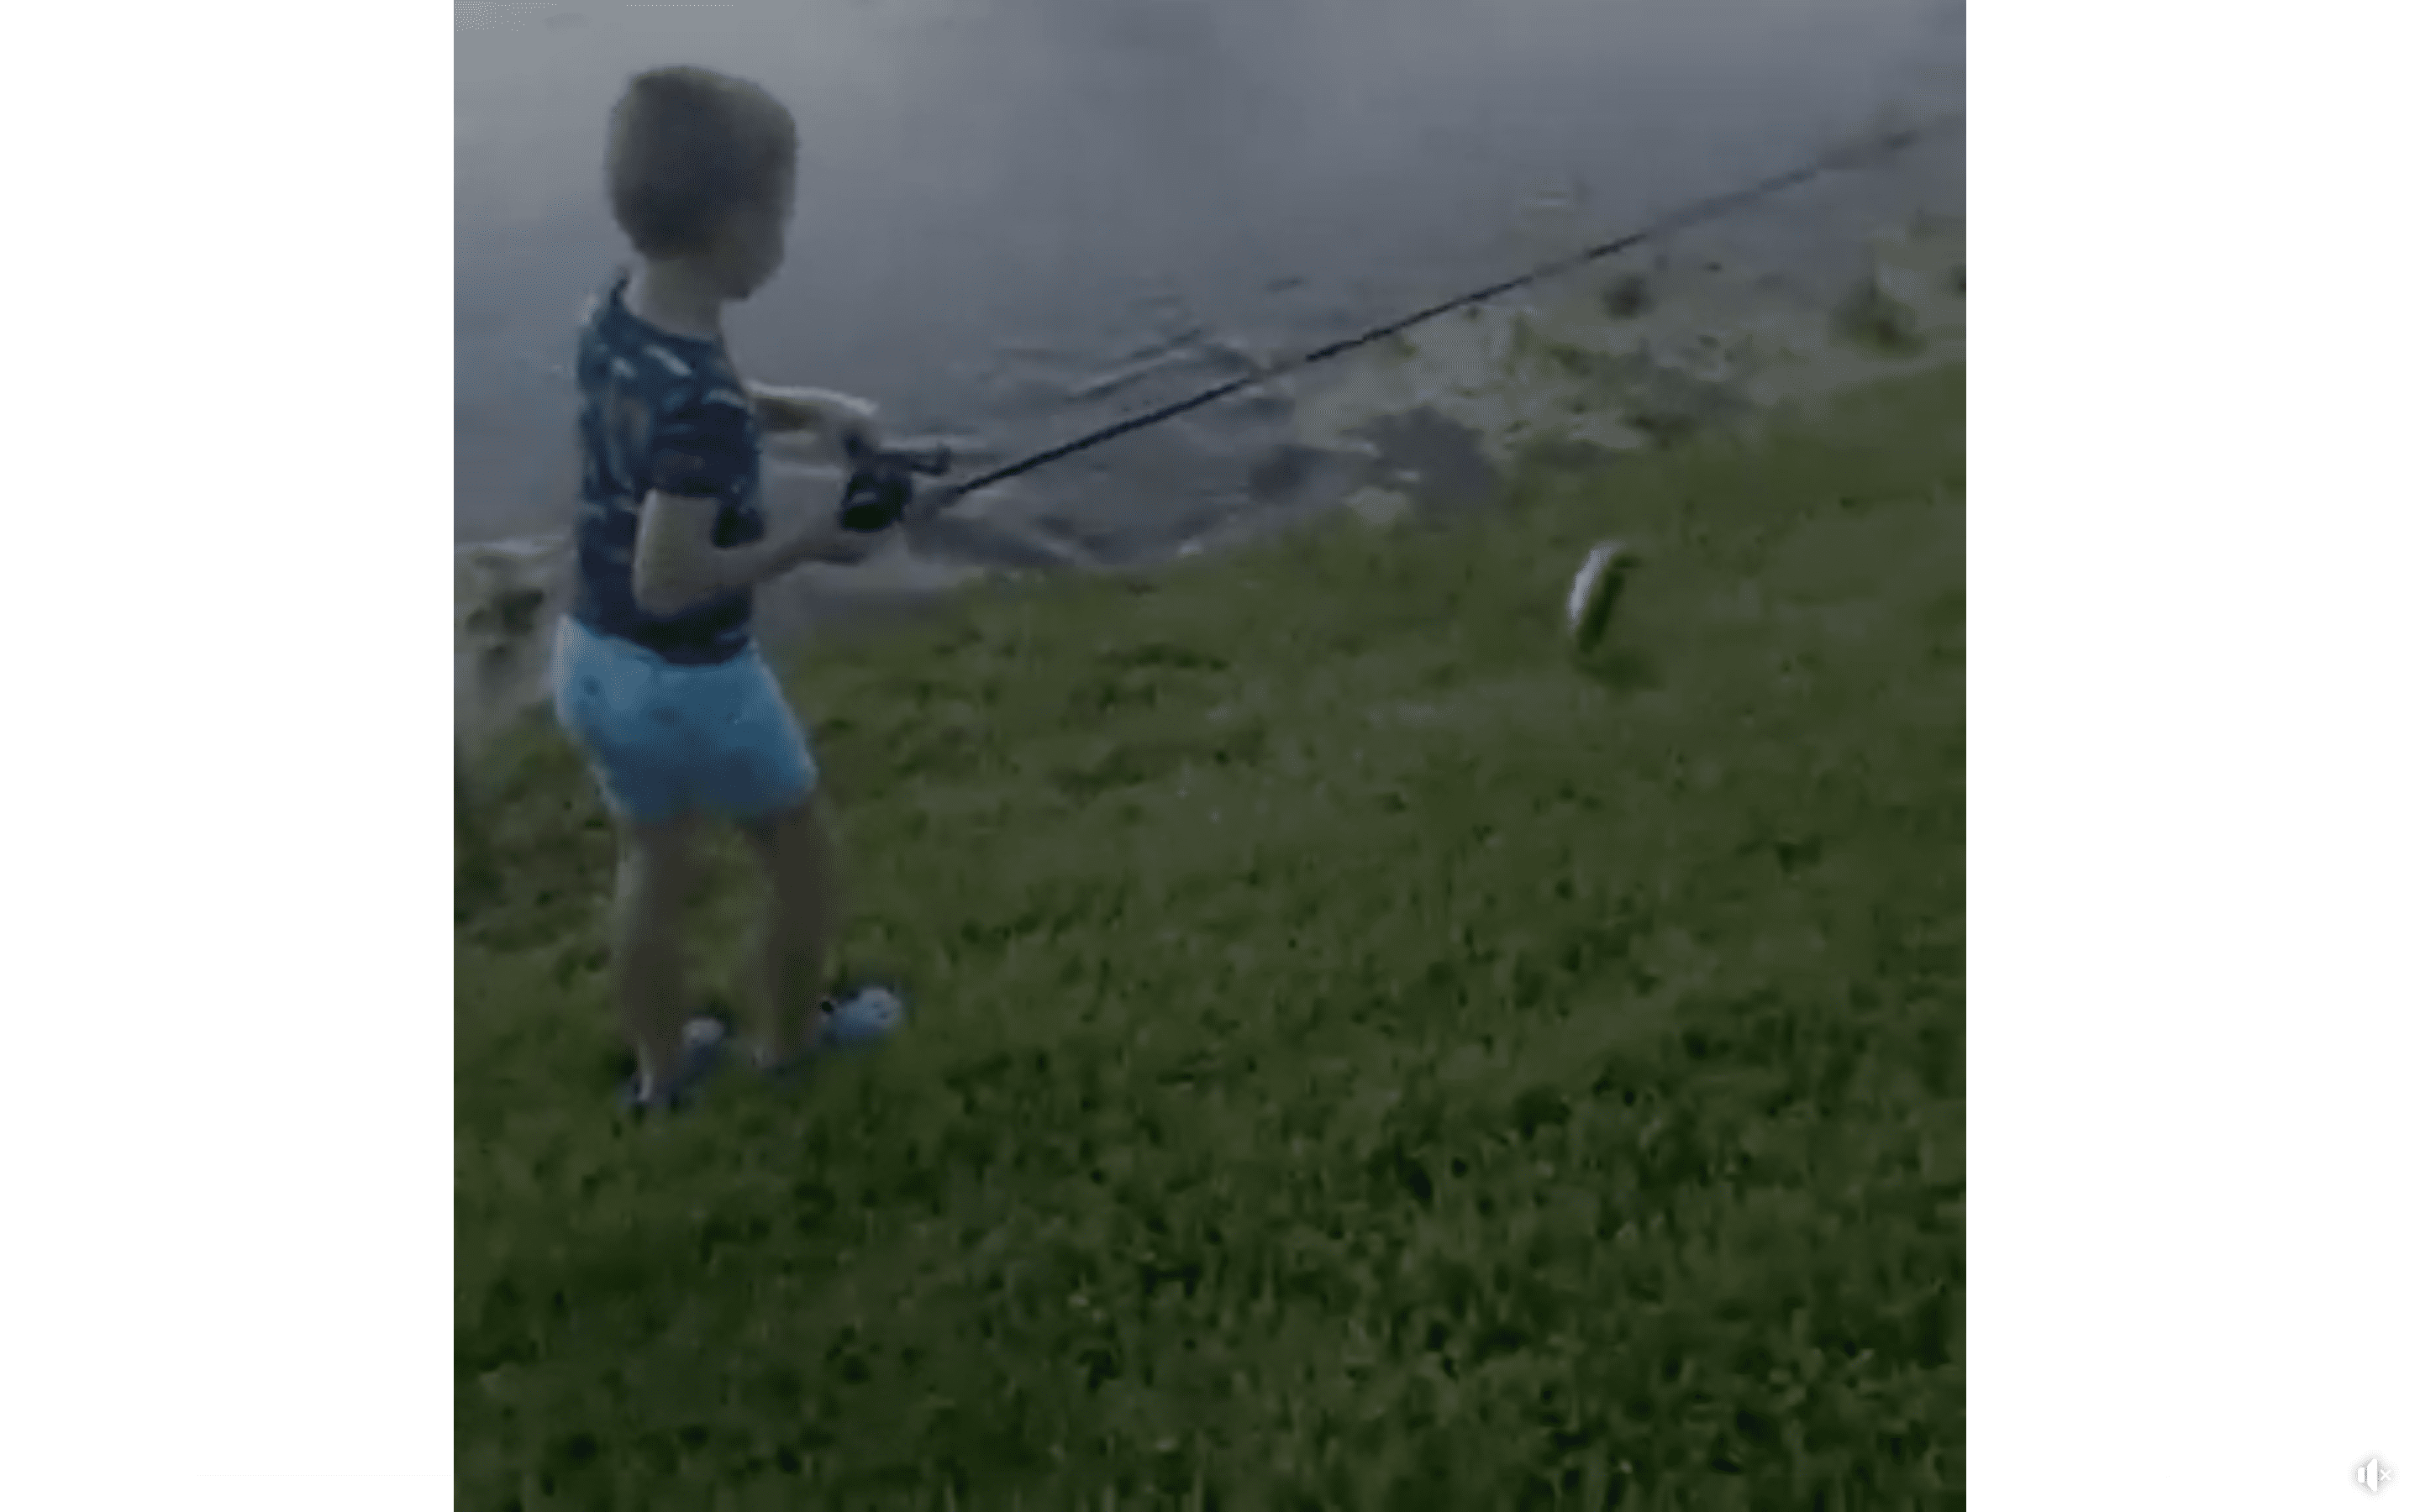 Sean McMahon cheers on his son as he catches a fish and drags it onto the land. | Photo: Facebook/Wesh2News